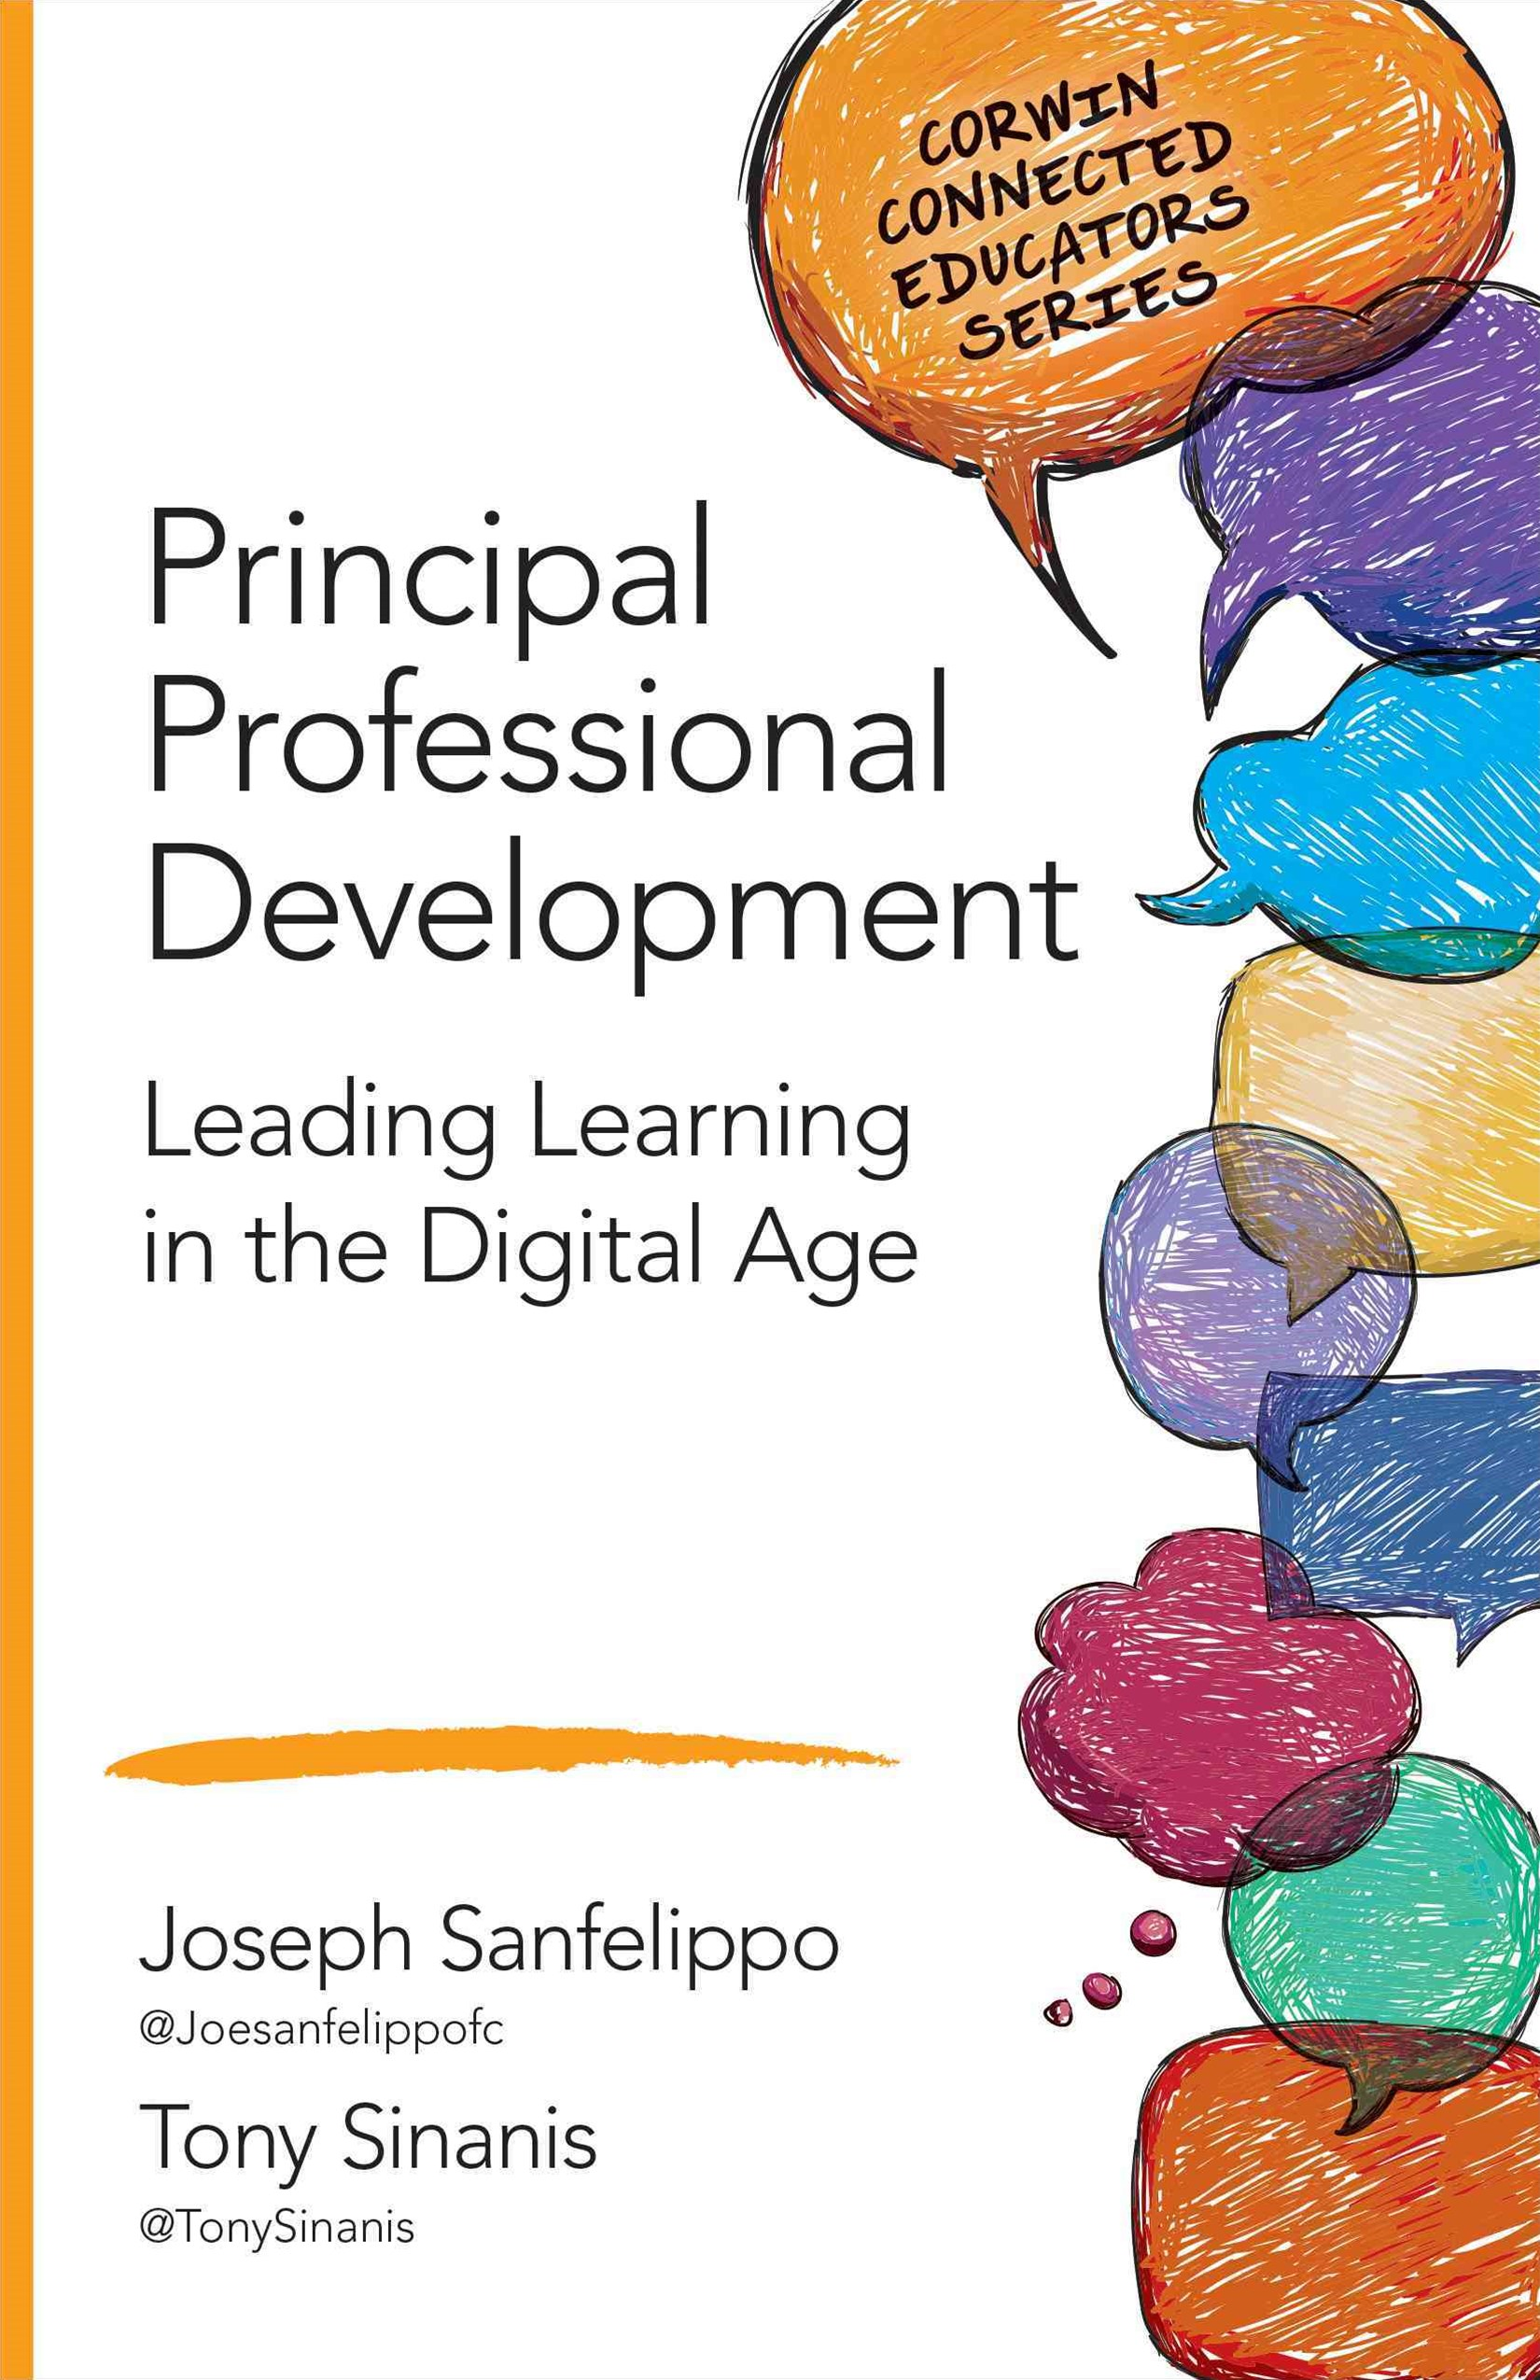 Principal Professional Development